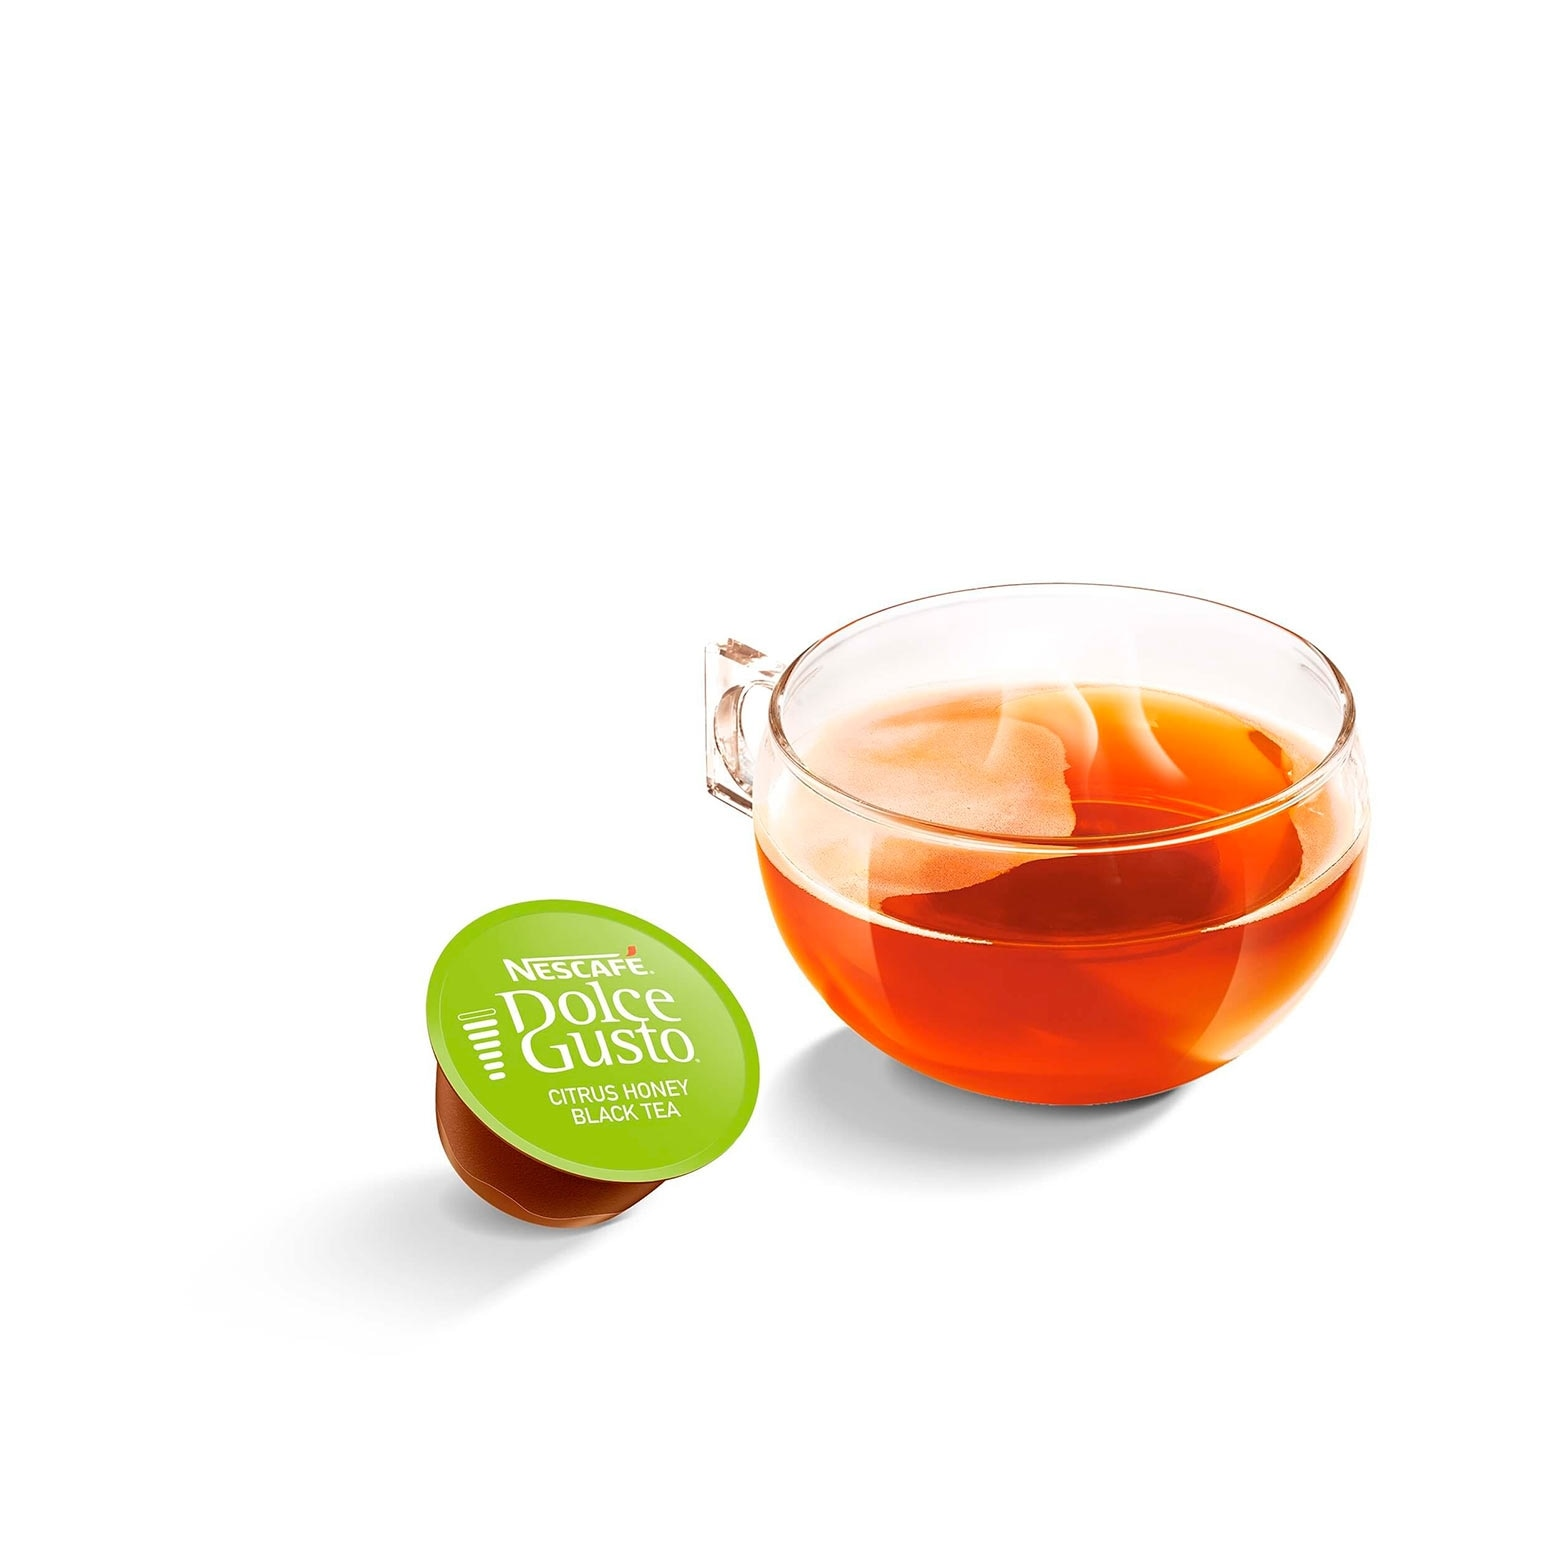 Citrus Honey Black Tea Capsule Dolce Gusto